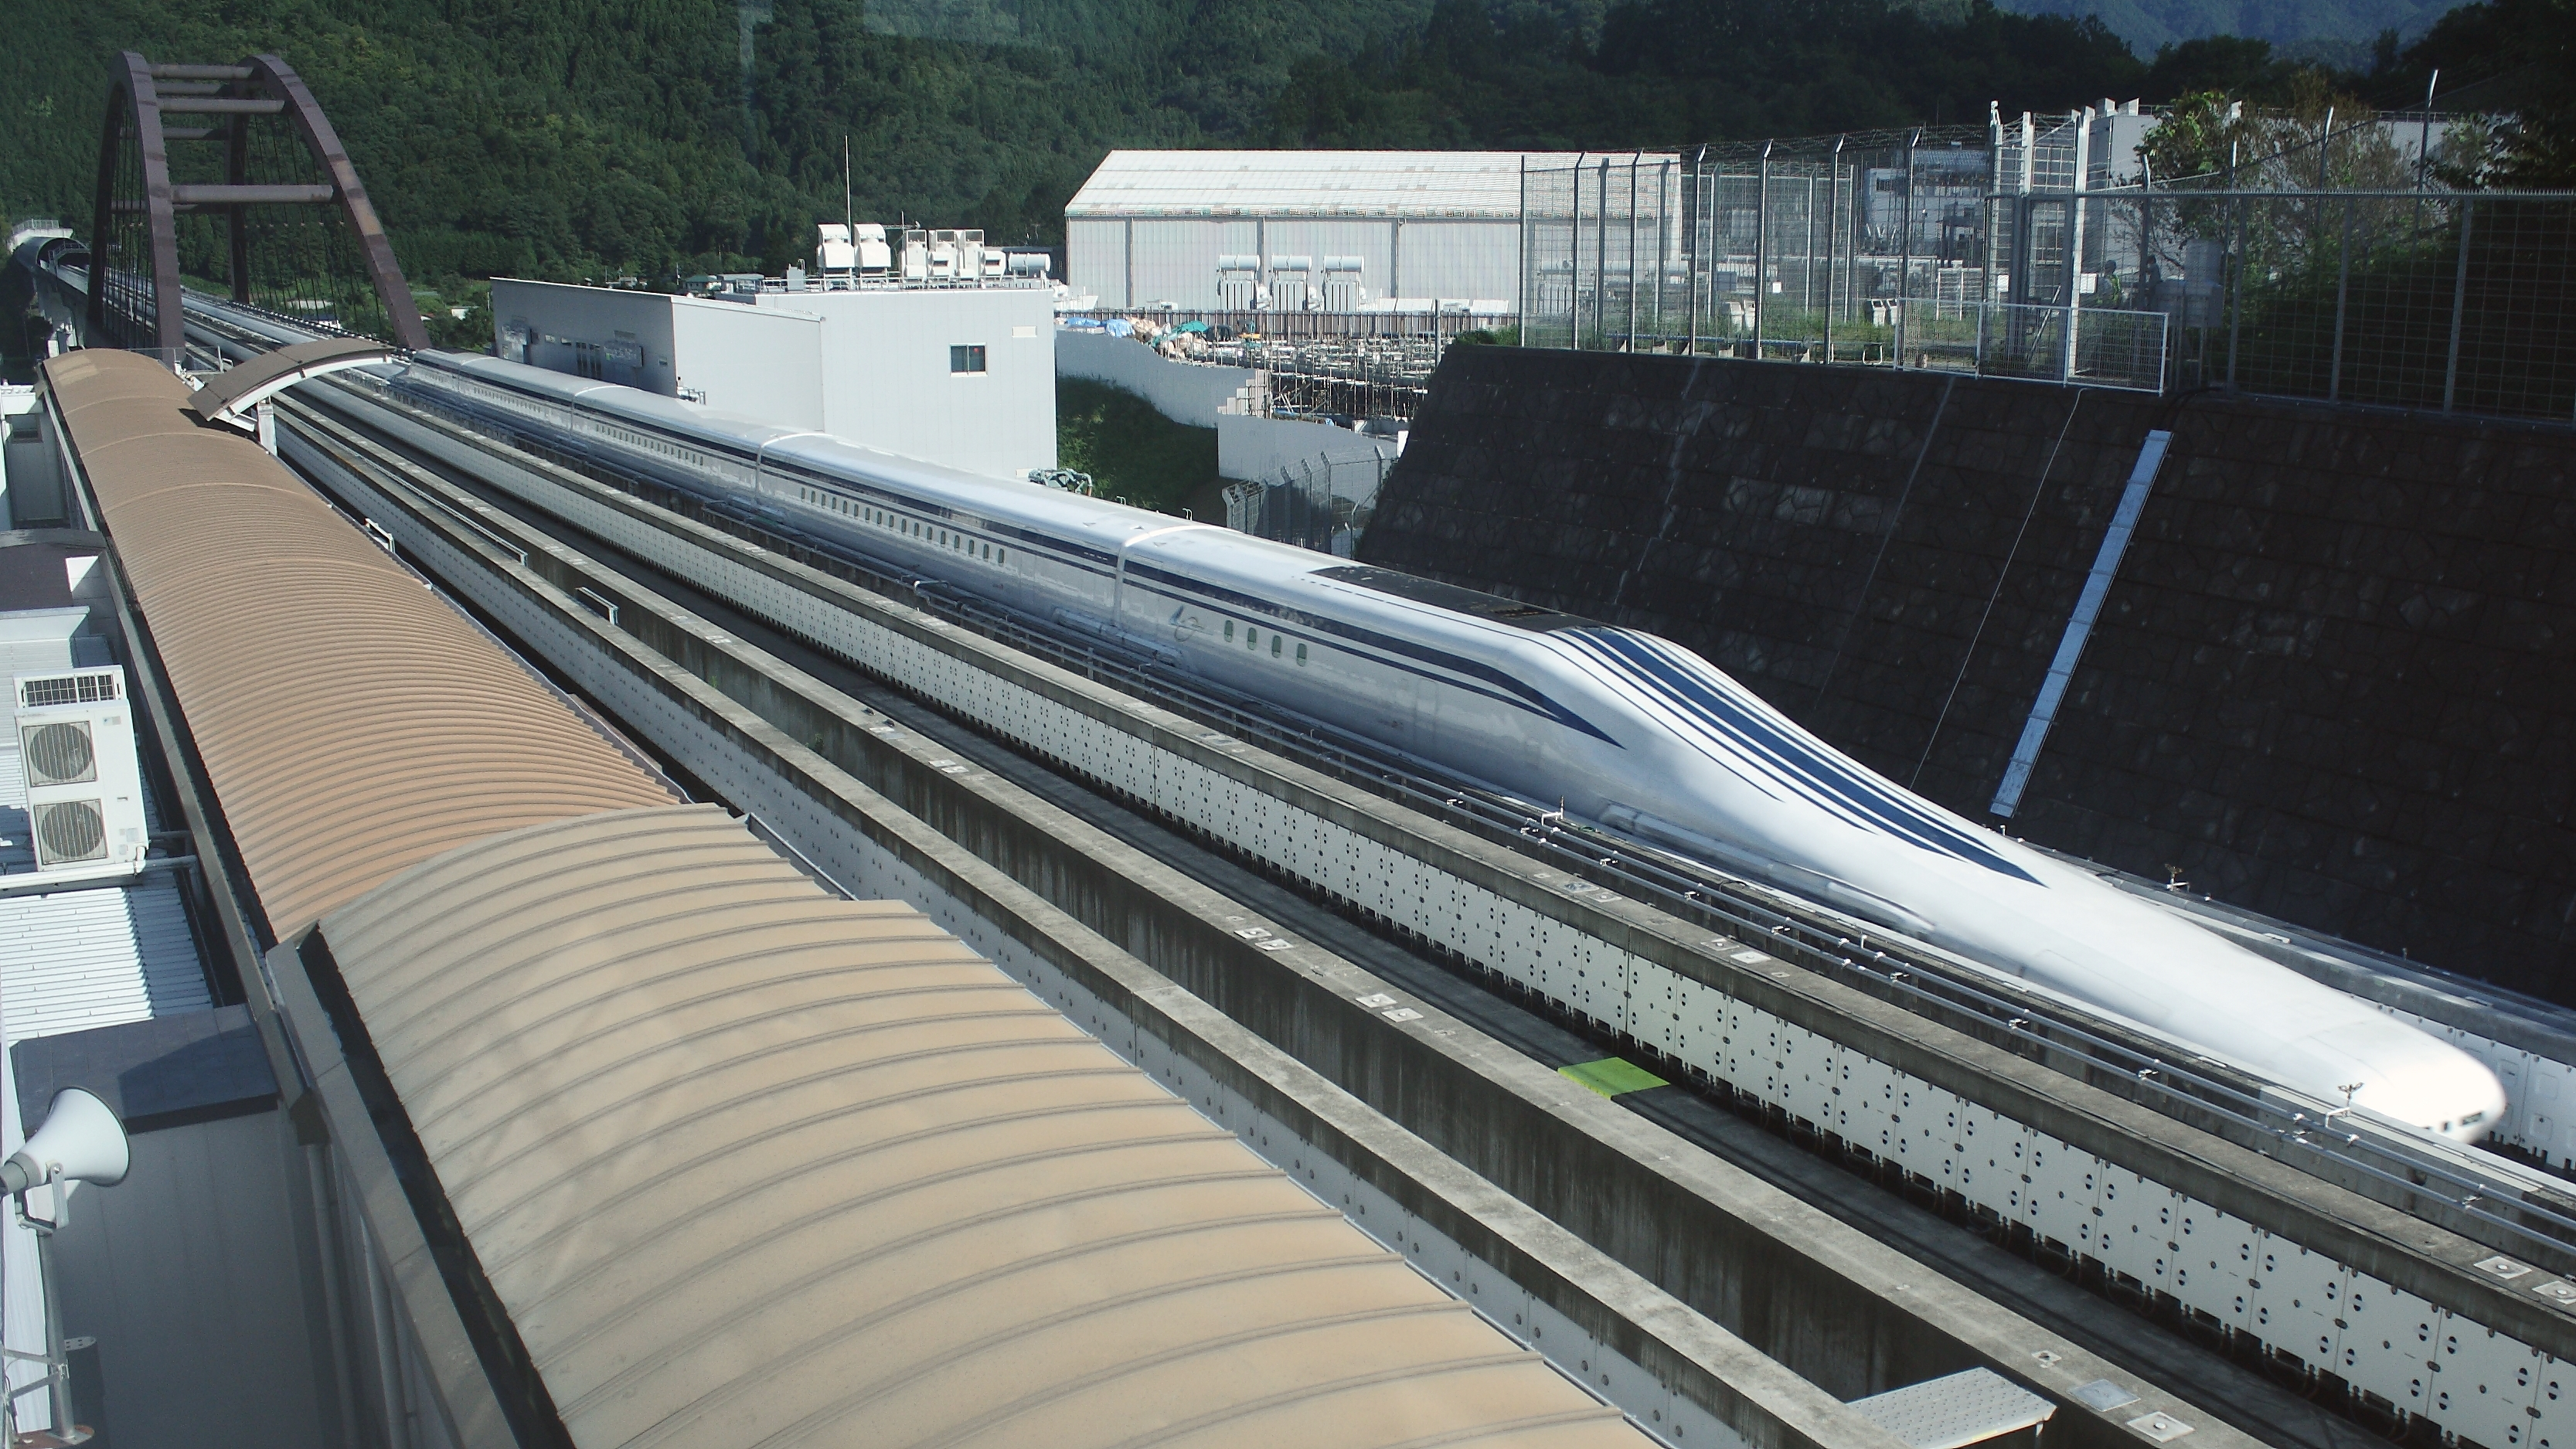 photo of Maglev train